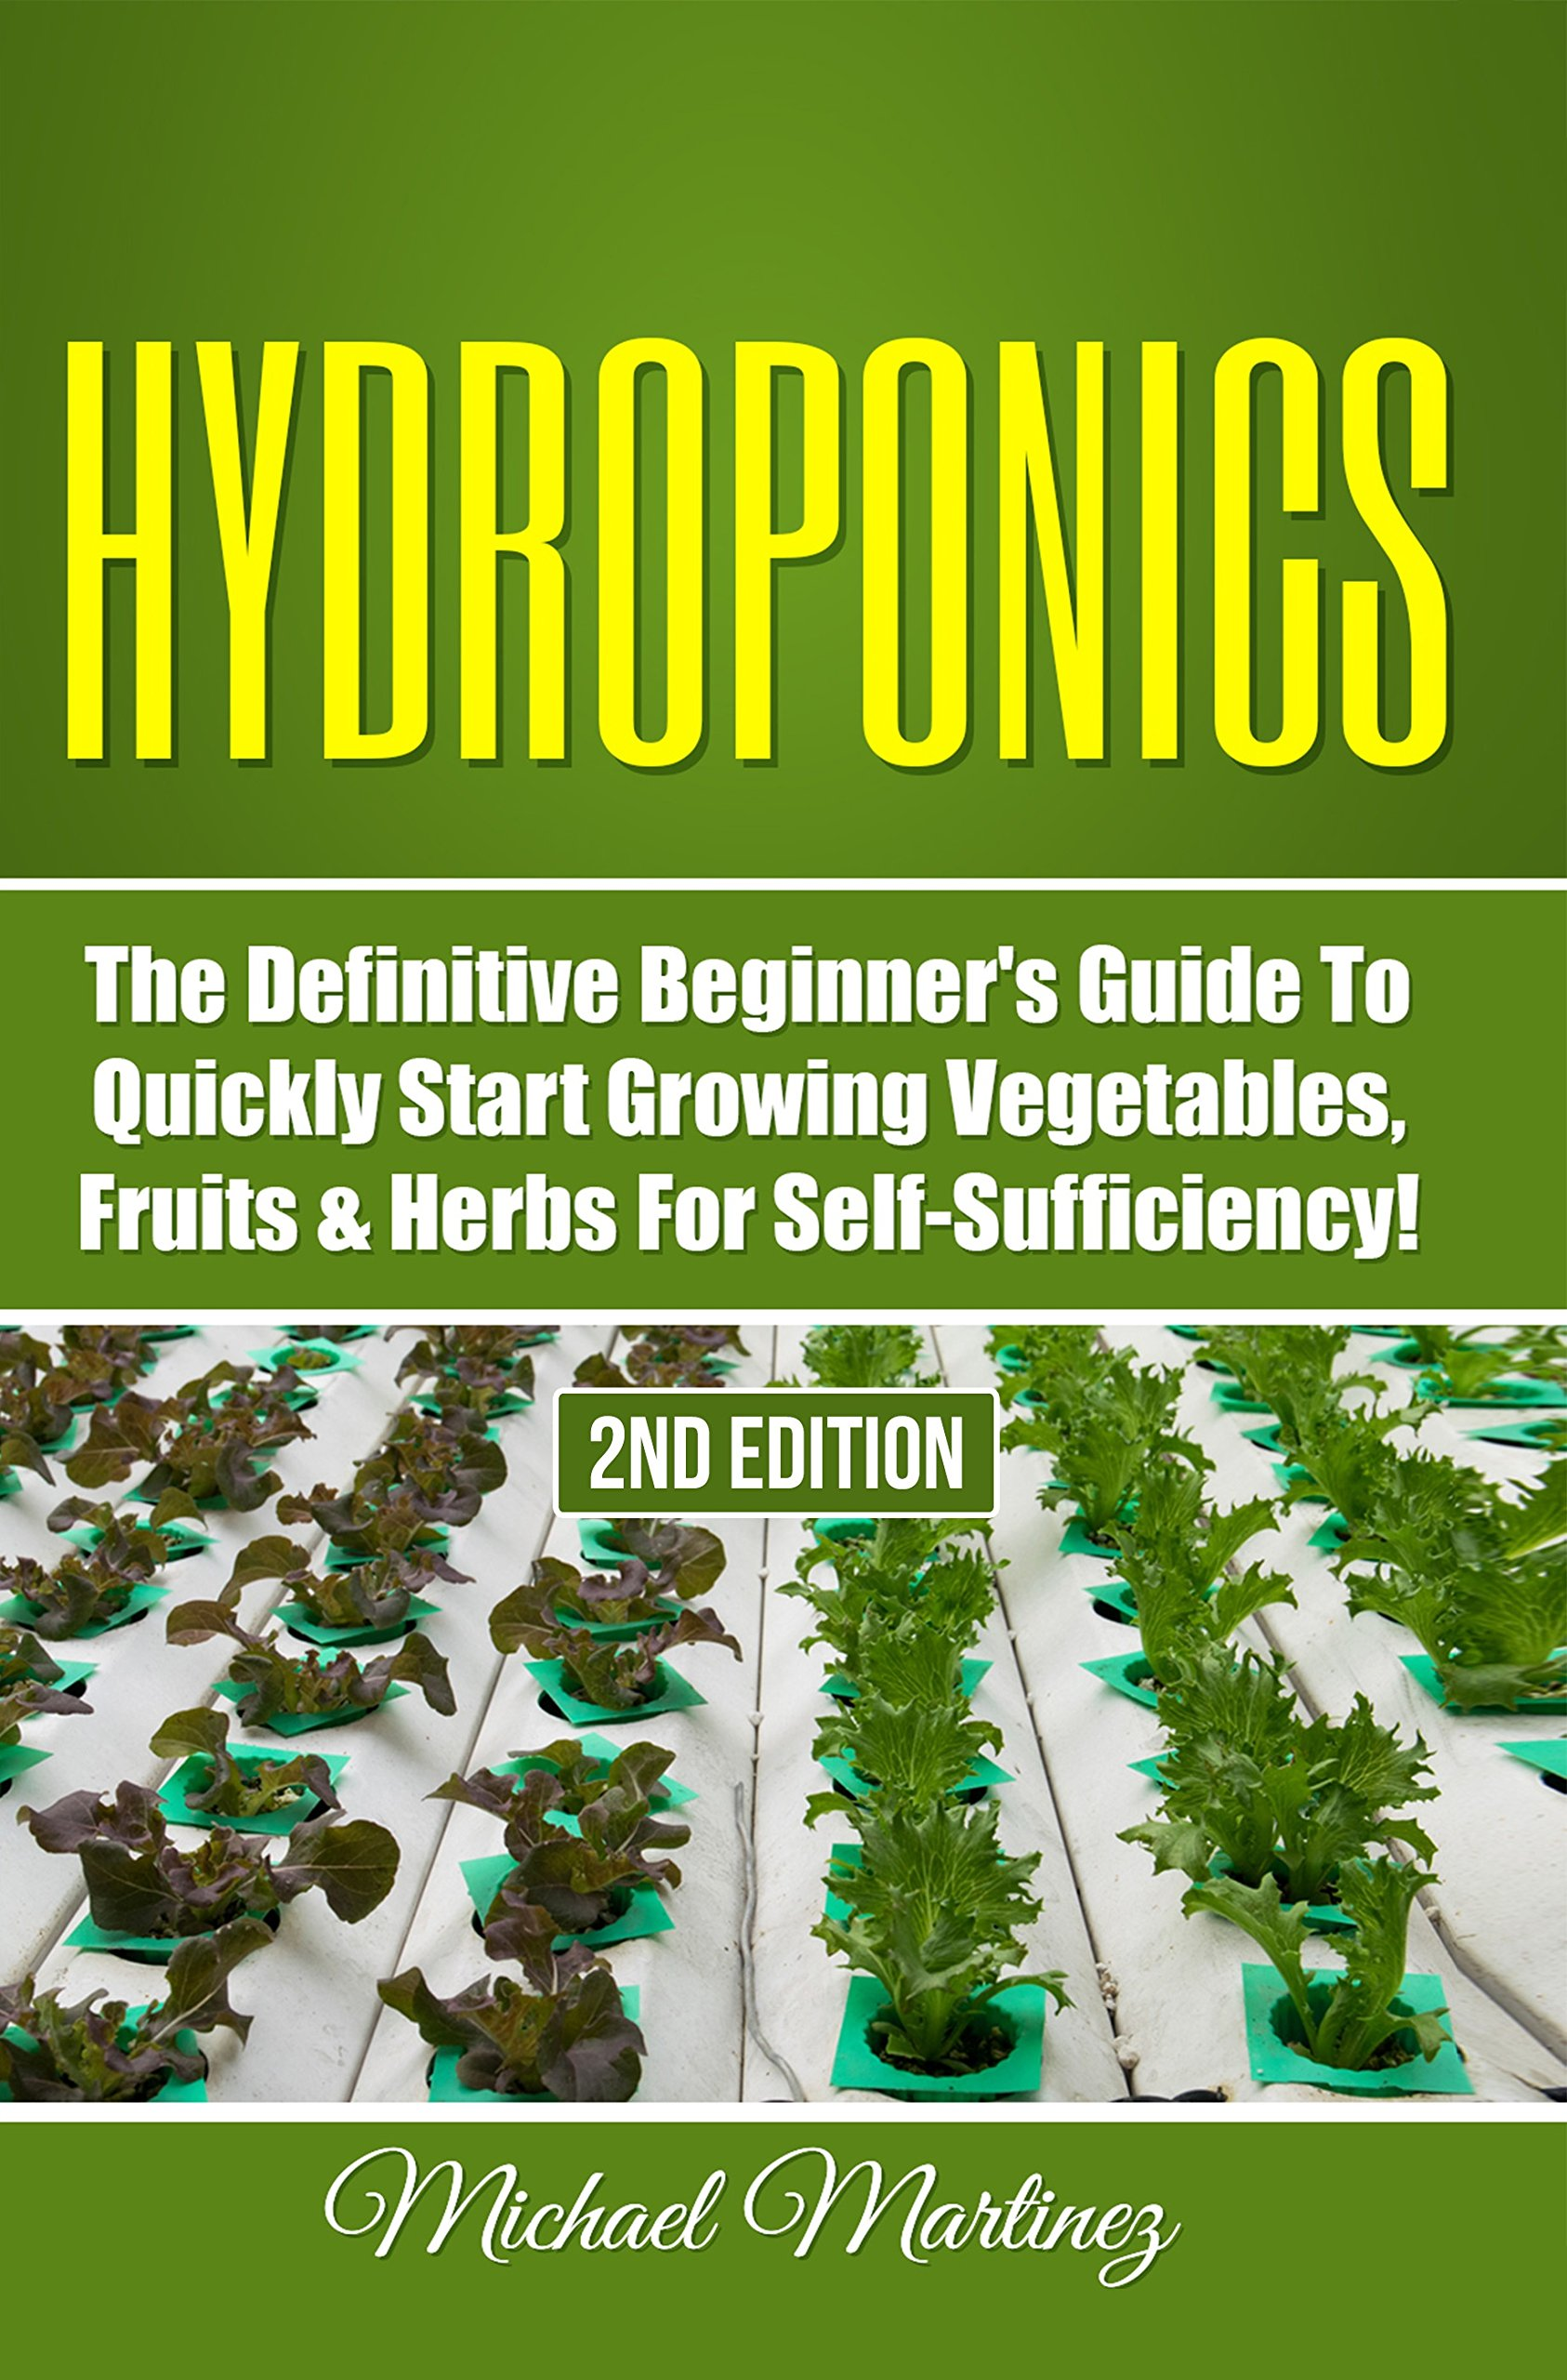 Hydroponics  The Definitive Beginner's Guide To Quickly Start Growing Vegetables Fruits Herbs For Self Sufficiency   Gardening Organic Gardening Homesteading ... Horticulture Aquaculture   English Edition